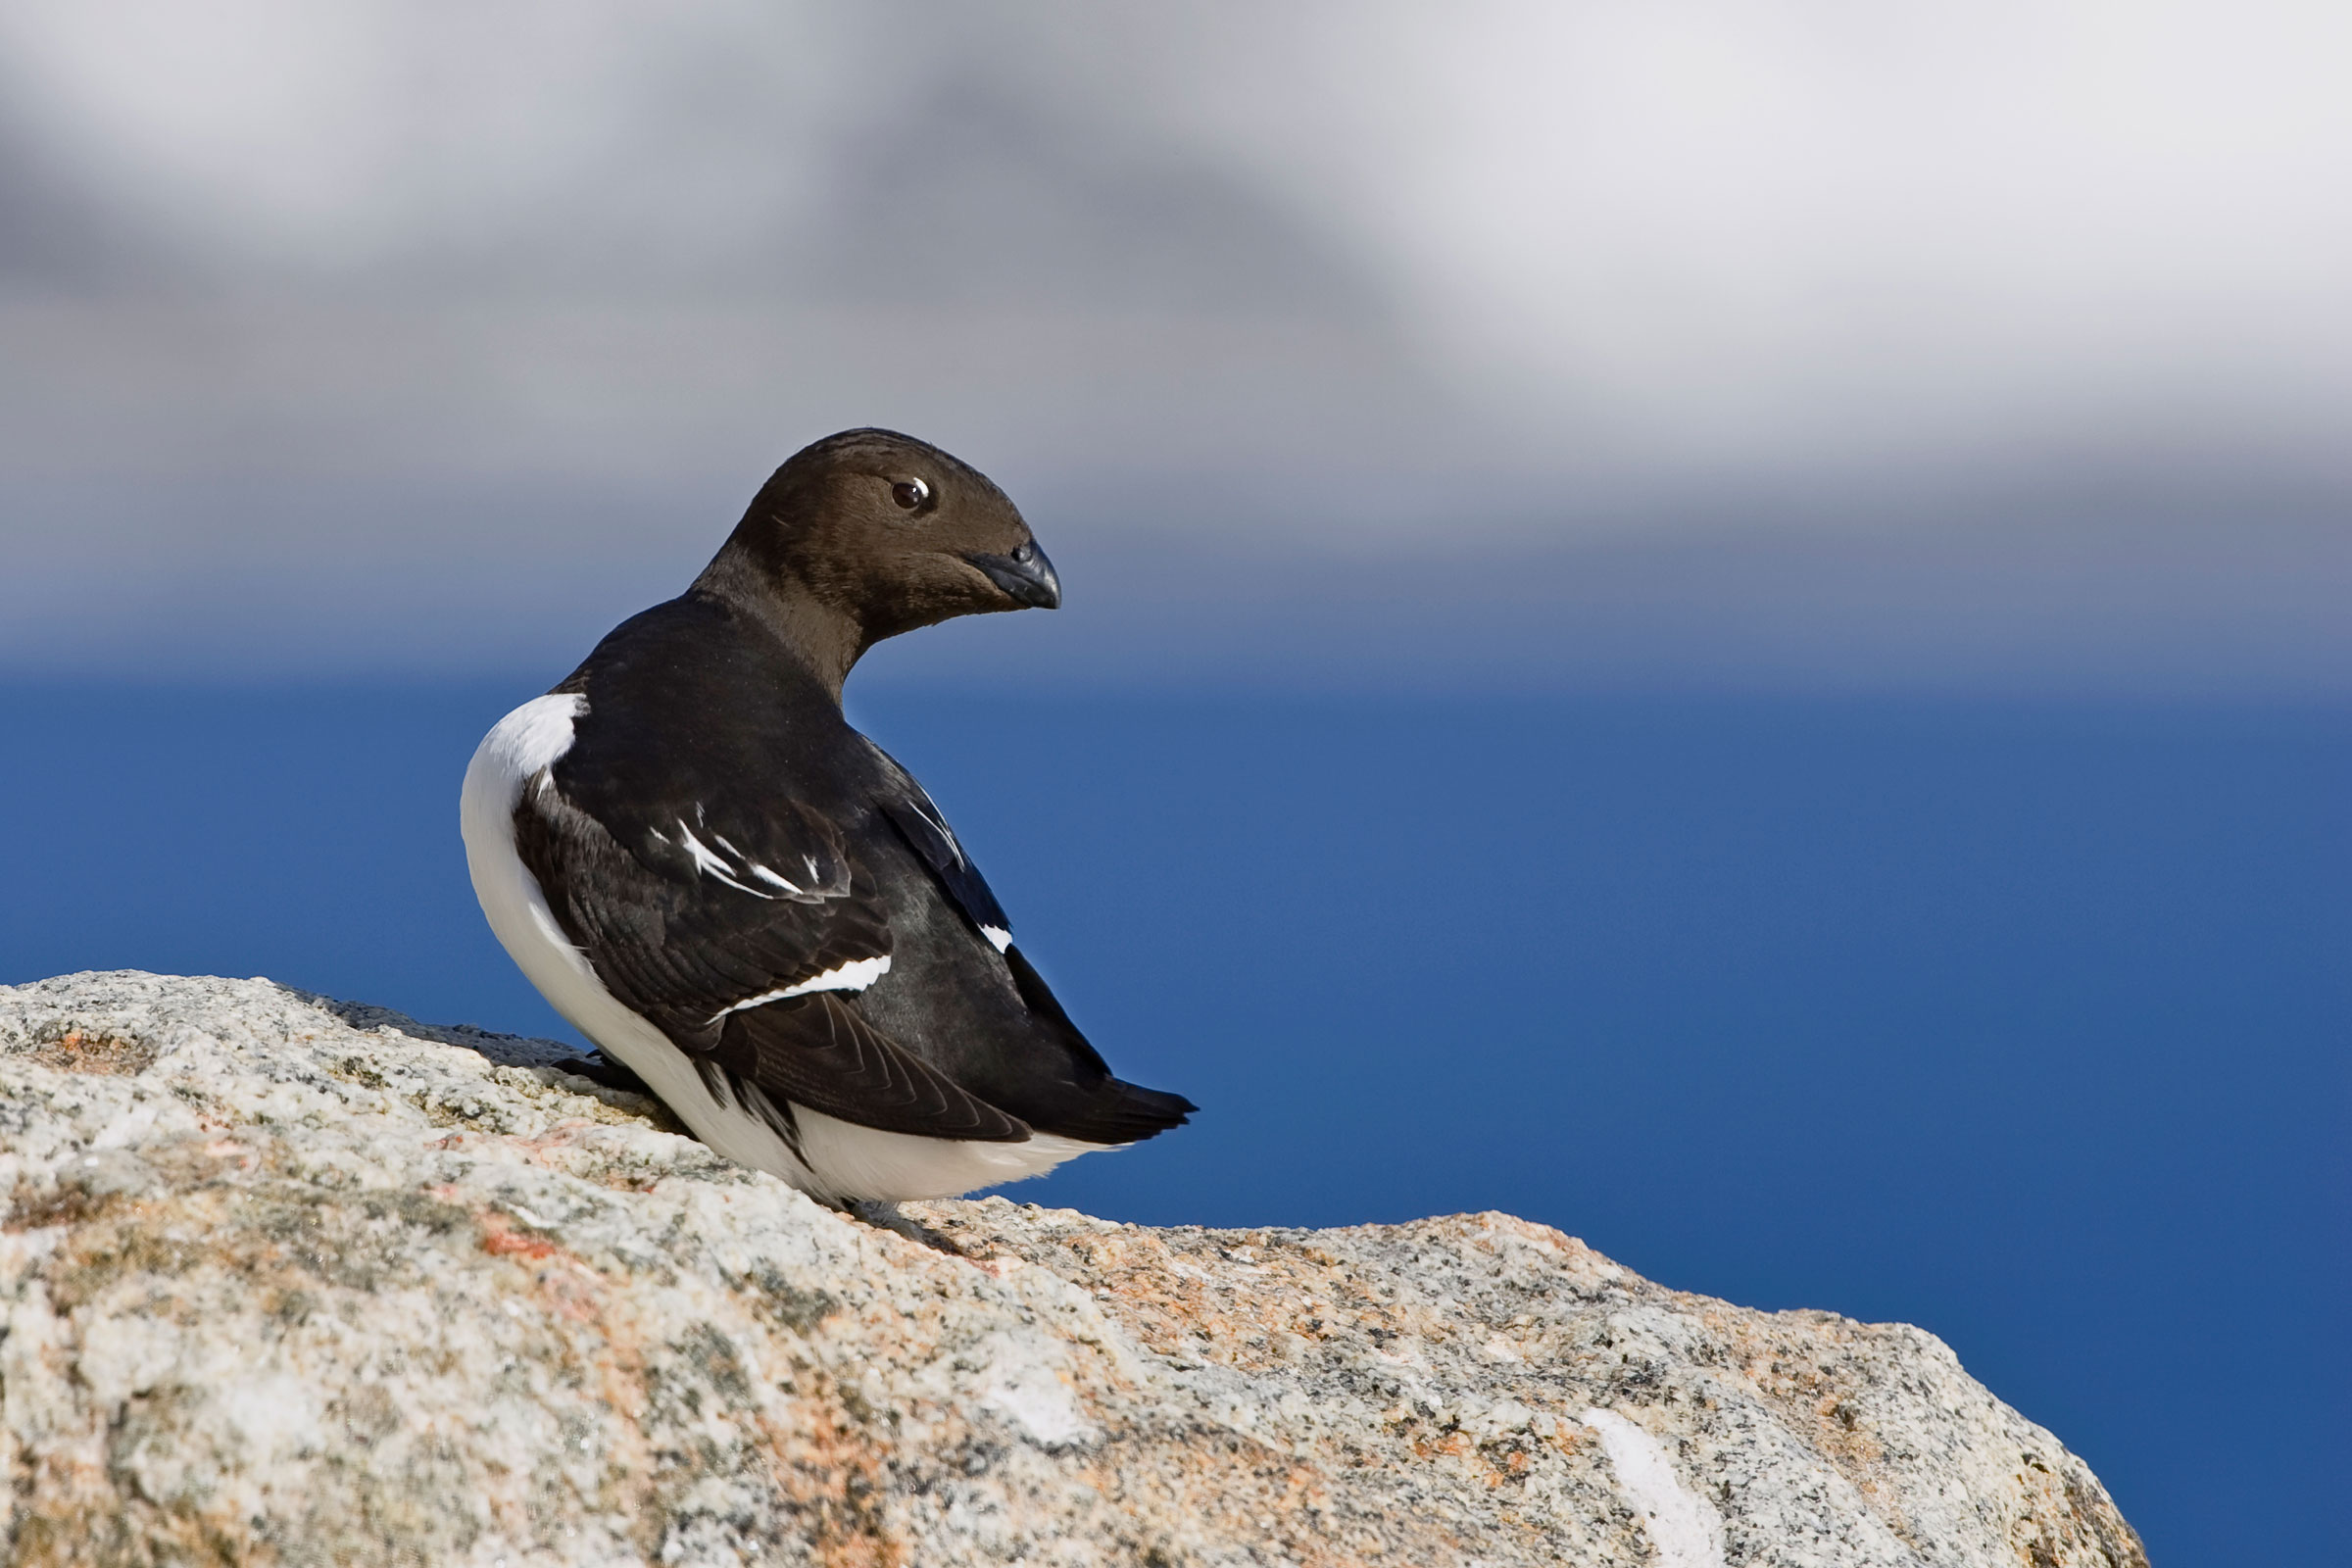 The Dovekie is a tiny member of the auk or alcid family, which also includes puffins. Konrad Wothe/Minden Picture/National Geographic Creative